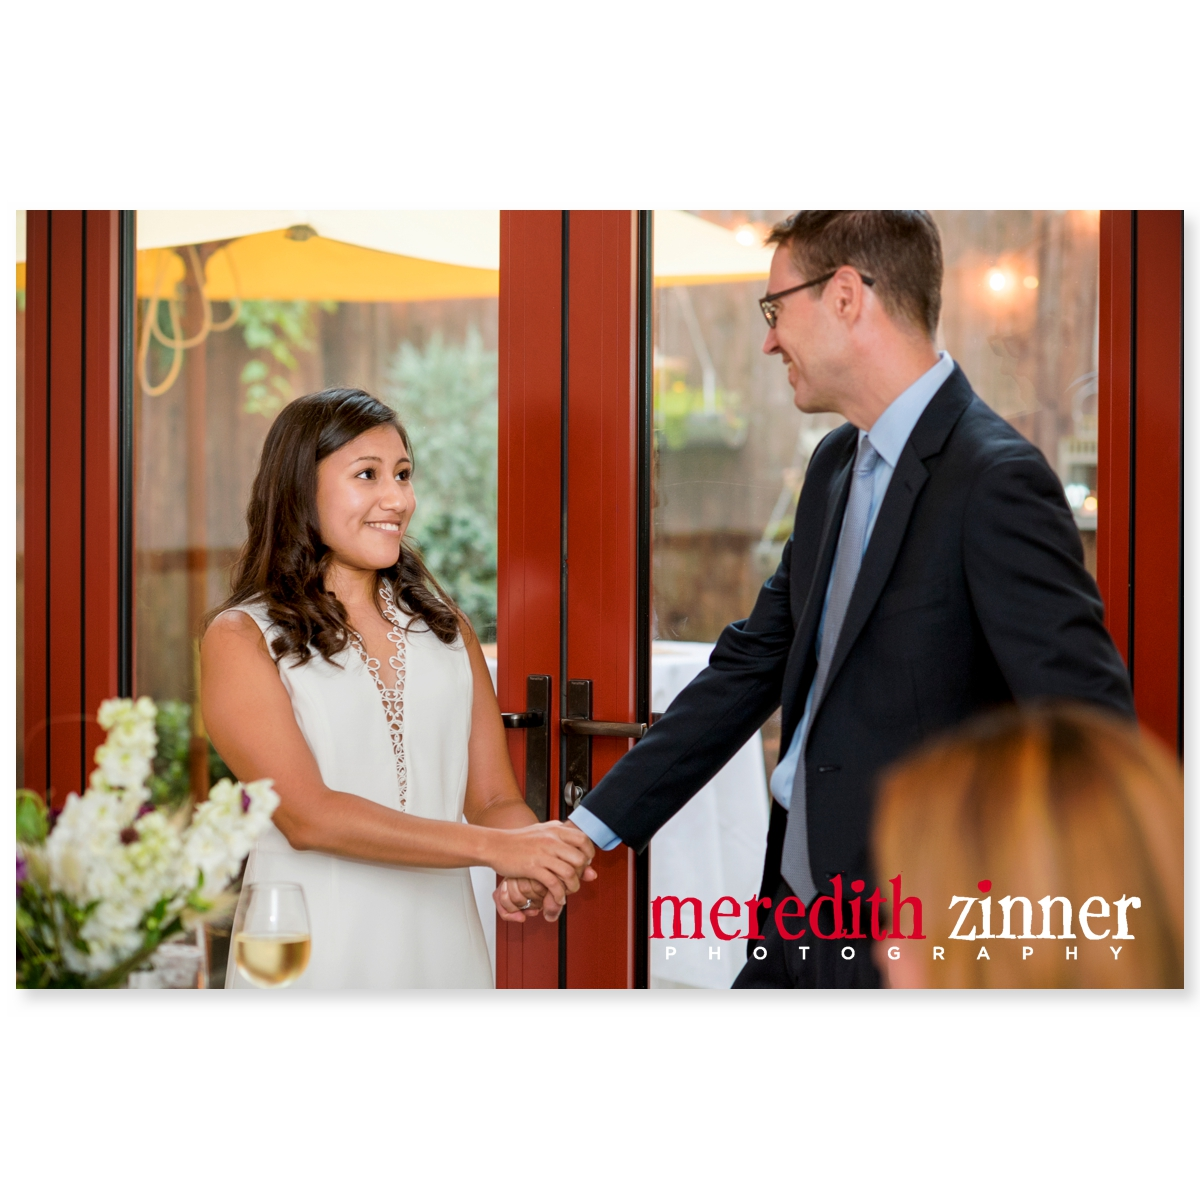 Meredith_Zinner_Photography_StilesCelebration_0194